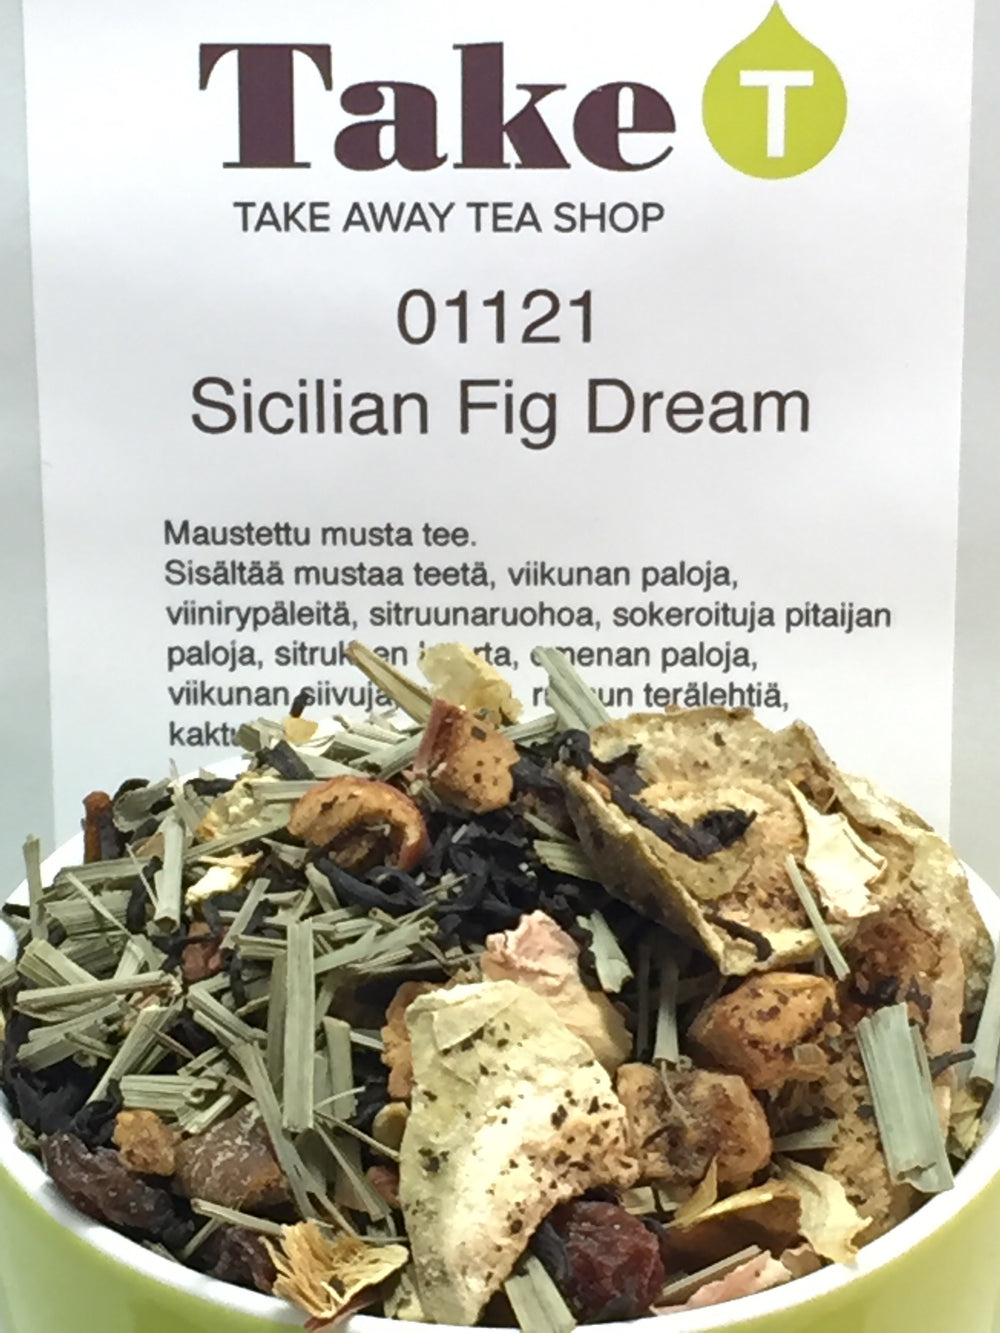 Sicilian Fig dream